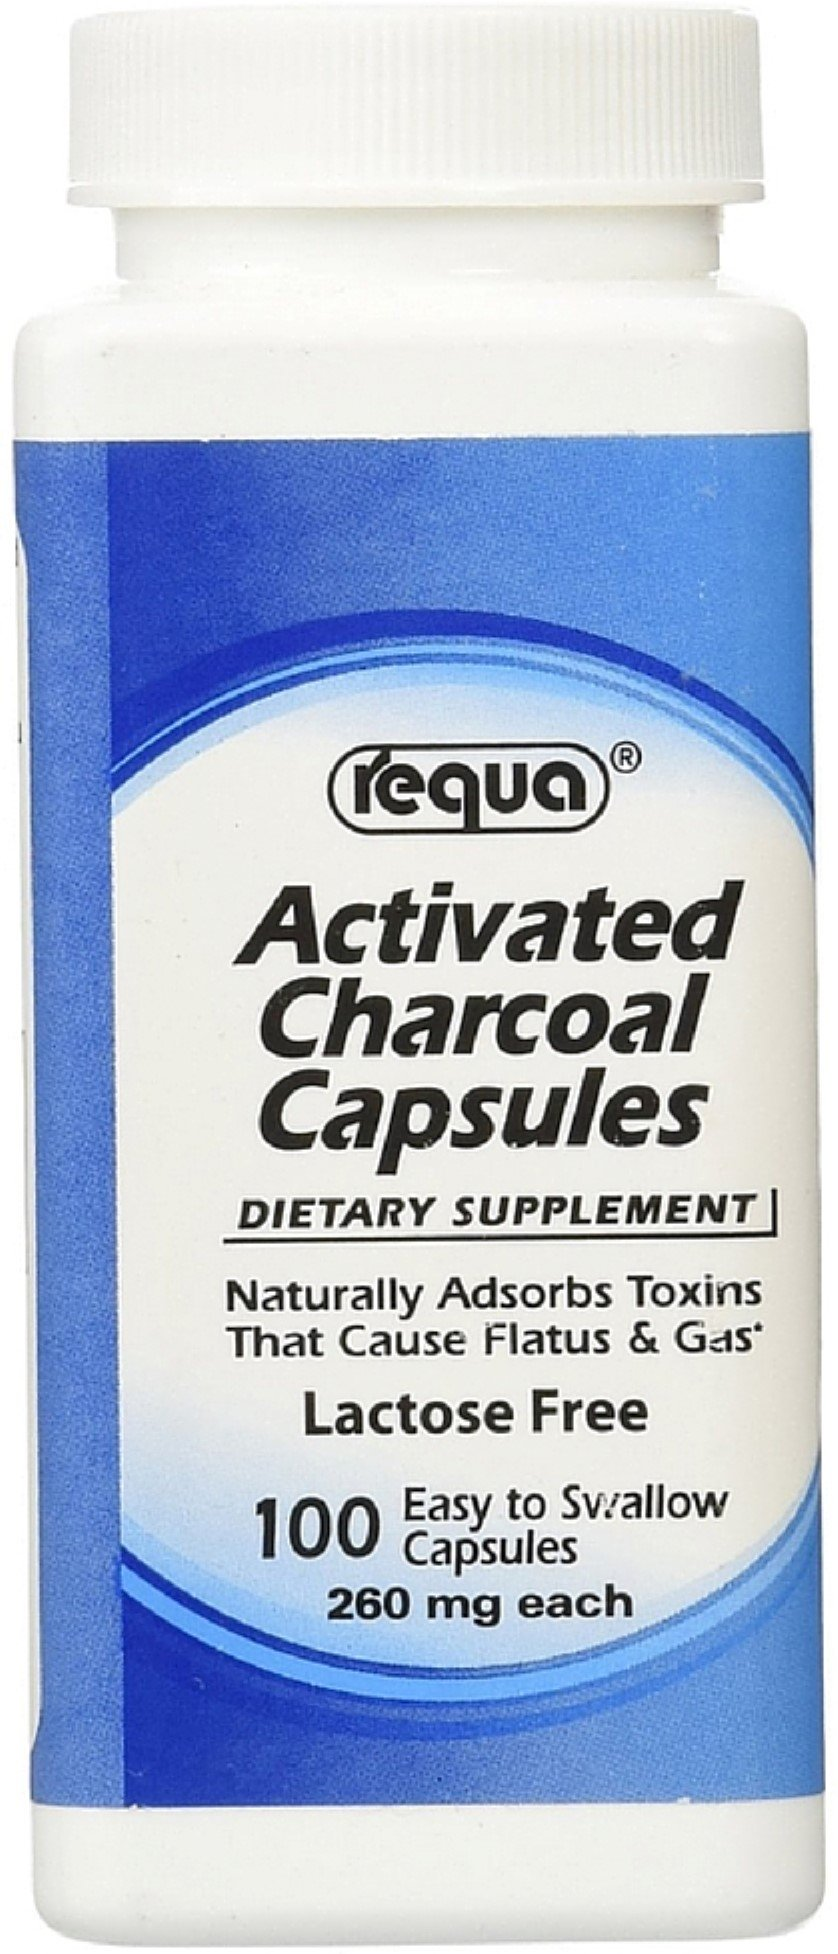 Requa Activated Charcoal Capsules 100 ea (Pack of 11)